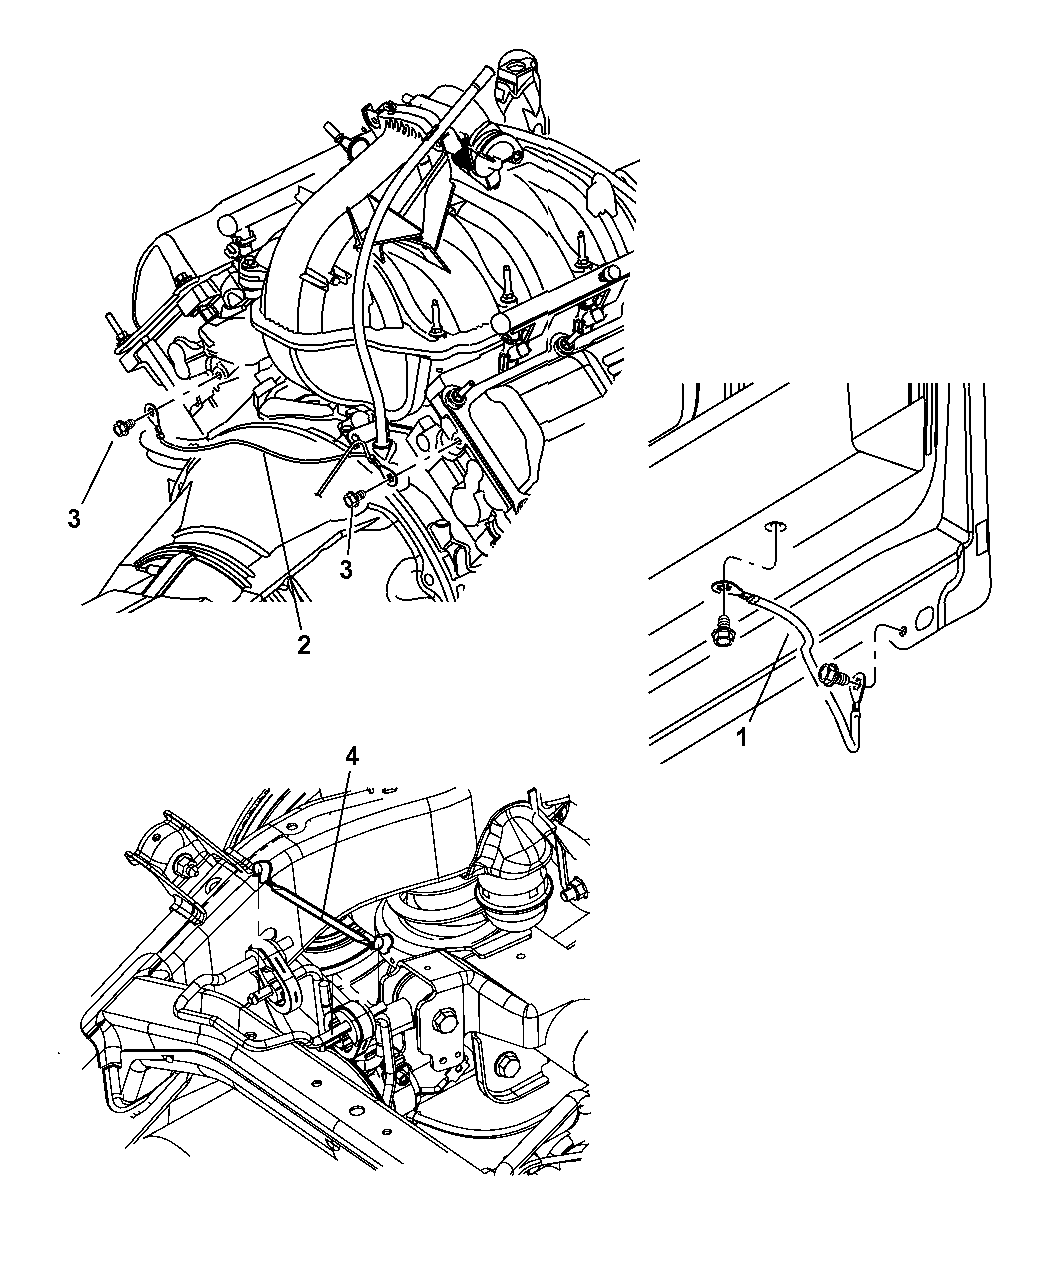 engine ground strap diagram